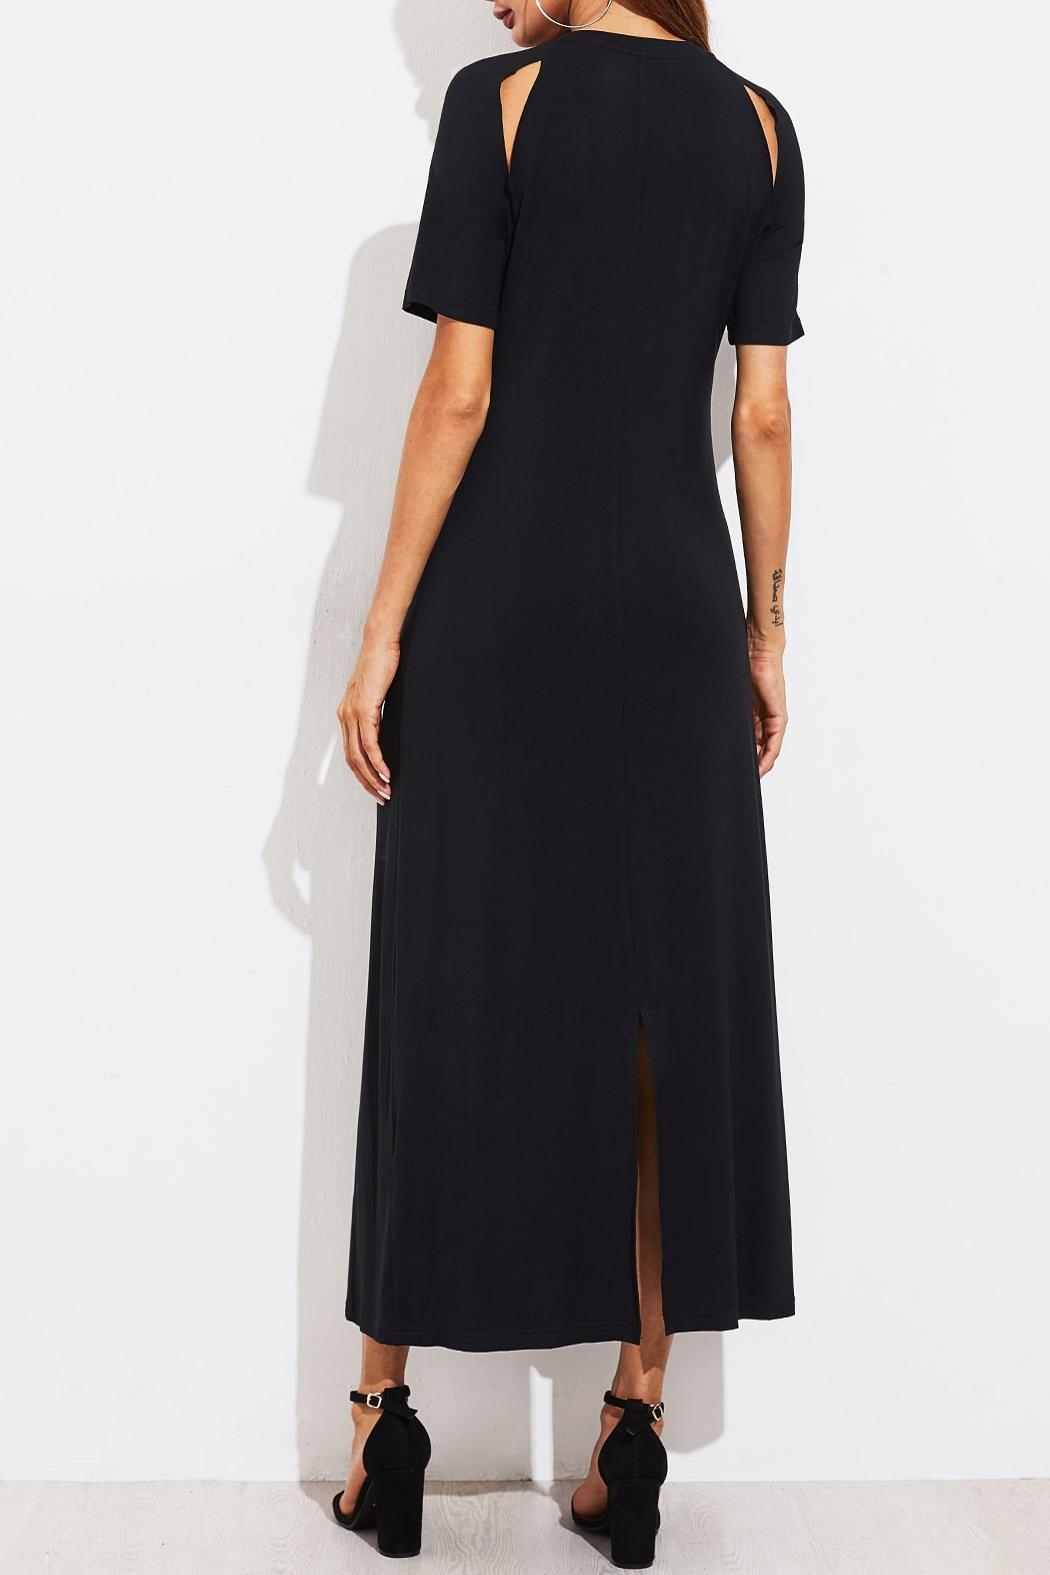 House of Atelier Cutout Black Dress - Back Cropped Image